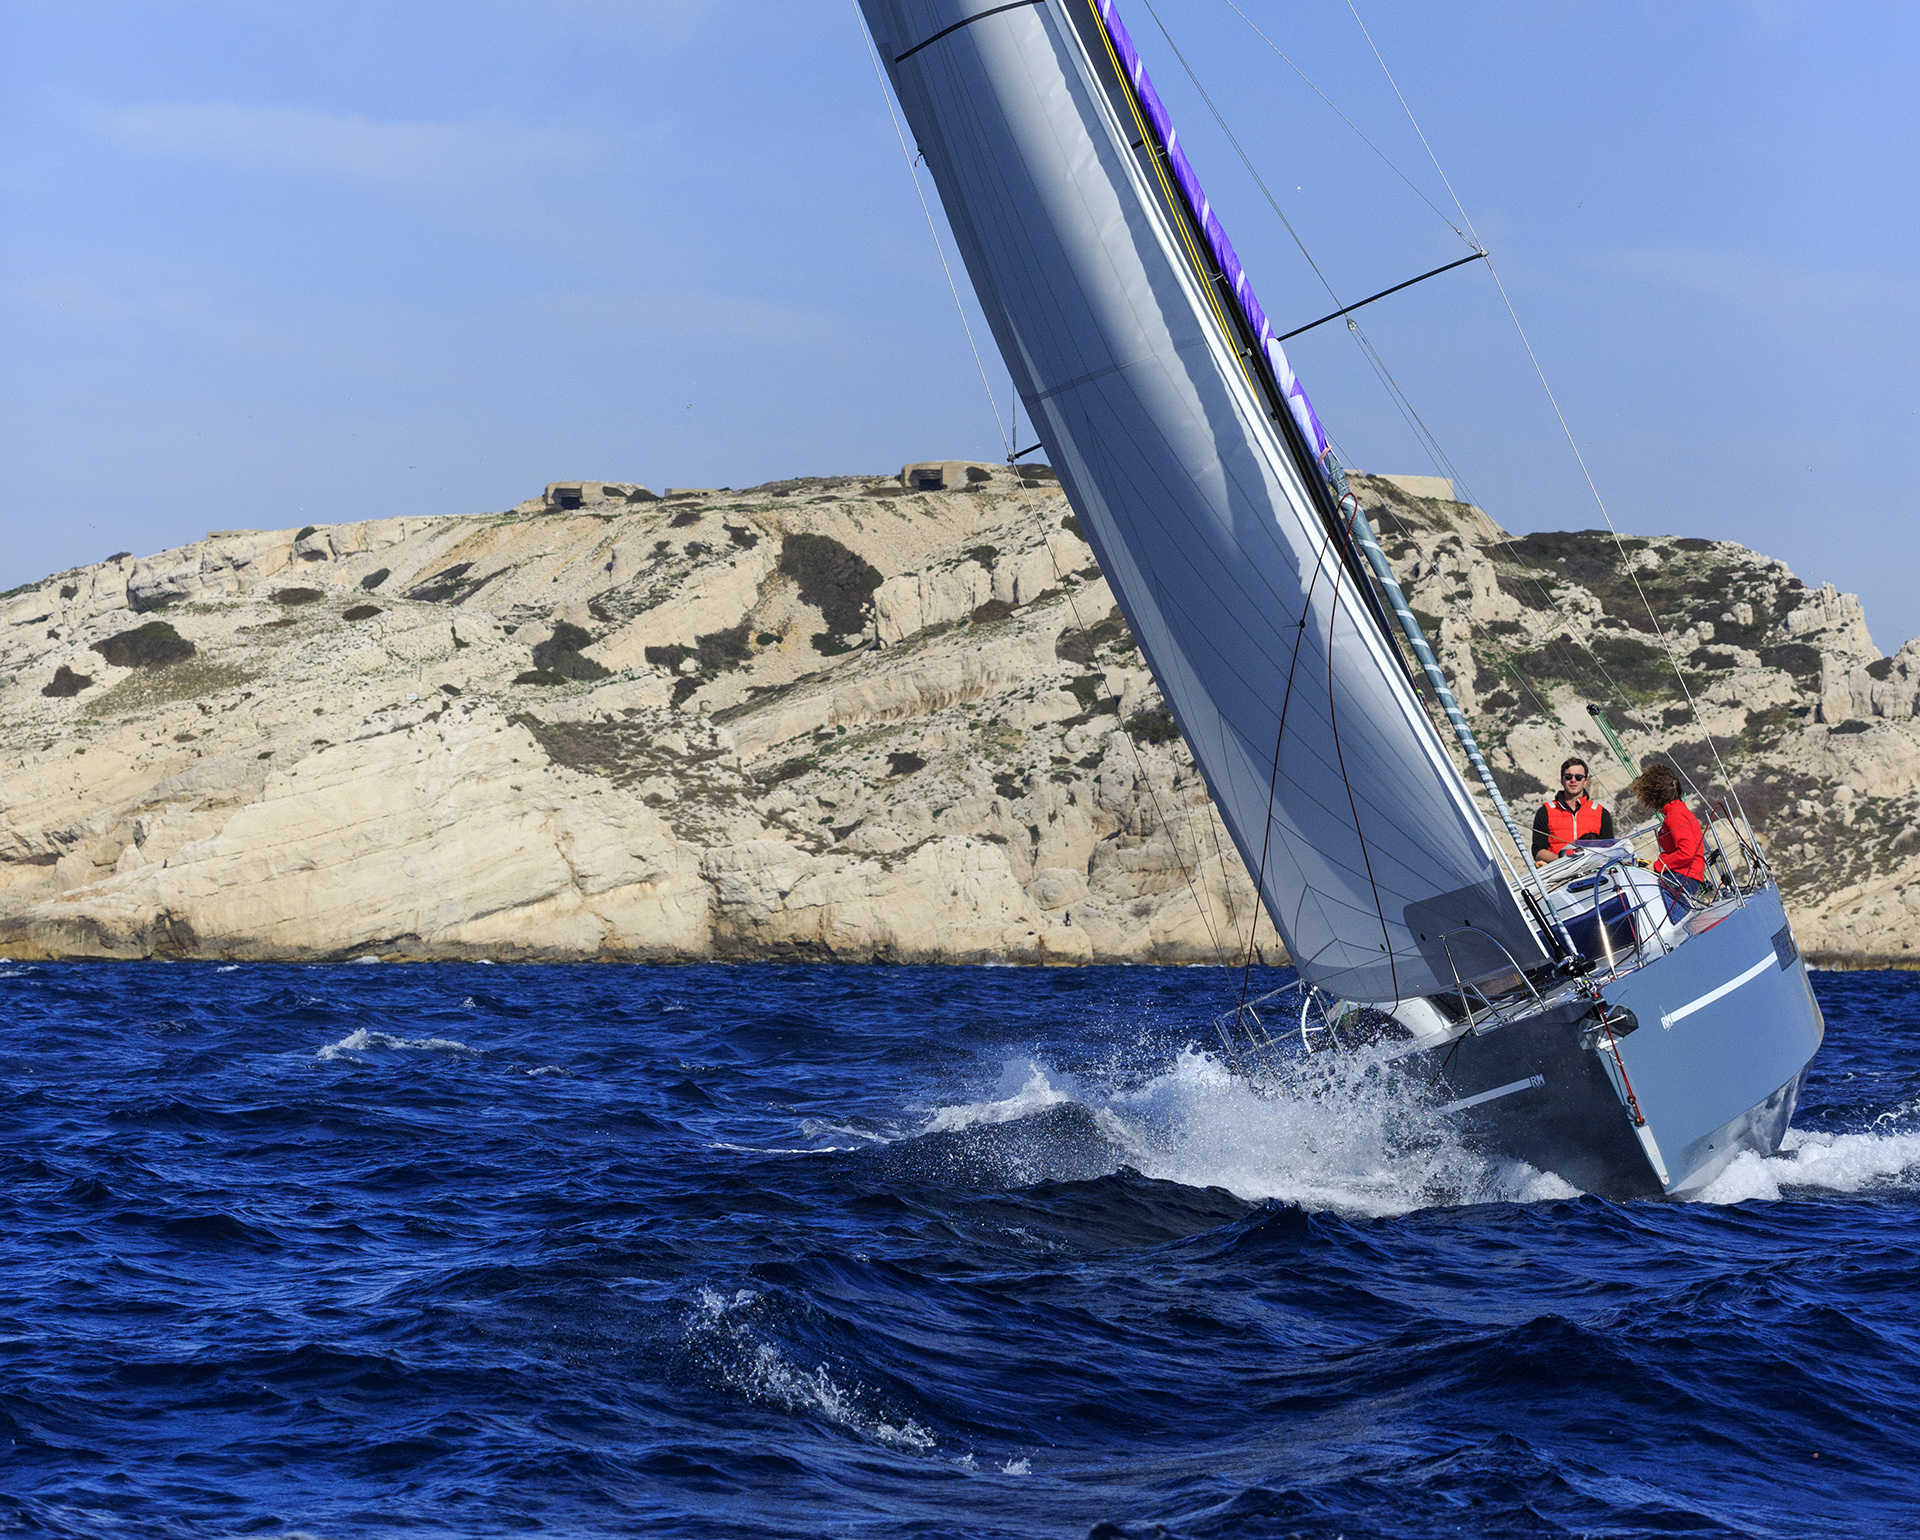 Graham Snook, Yachting Monthly